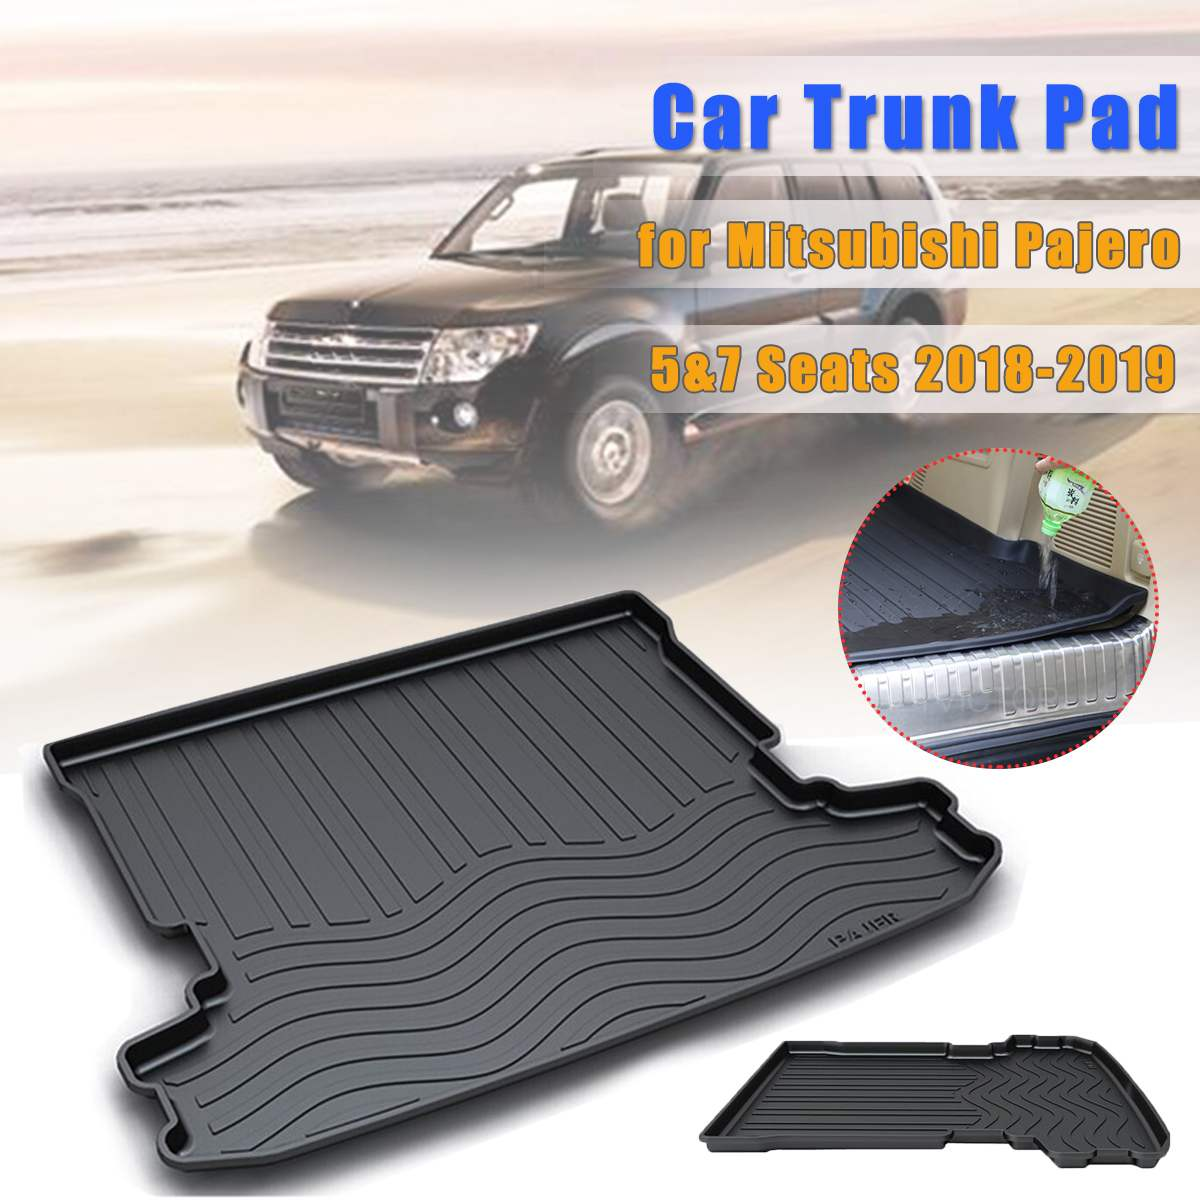 Car Cargo Liner Floor Mat Rear Trunk Mat for Mitsubishi Pajero 5 & 7 Seats 2006-2010 2011 2012 2013 2014 2015 2016 2017 2018 image